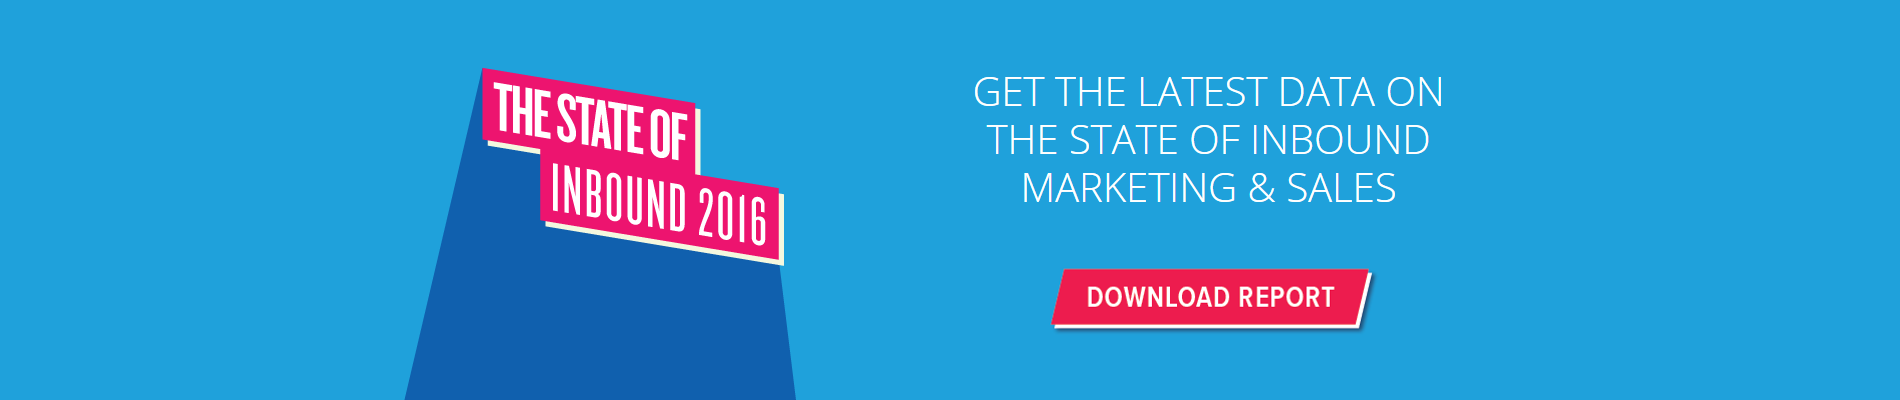 State_Of_Inbound_Marketing_and_Sales.png